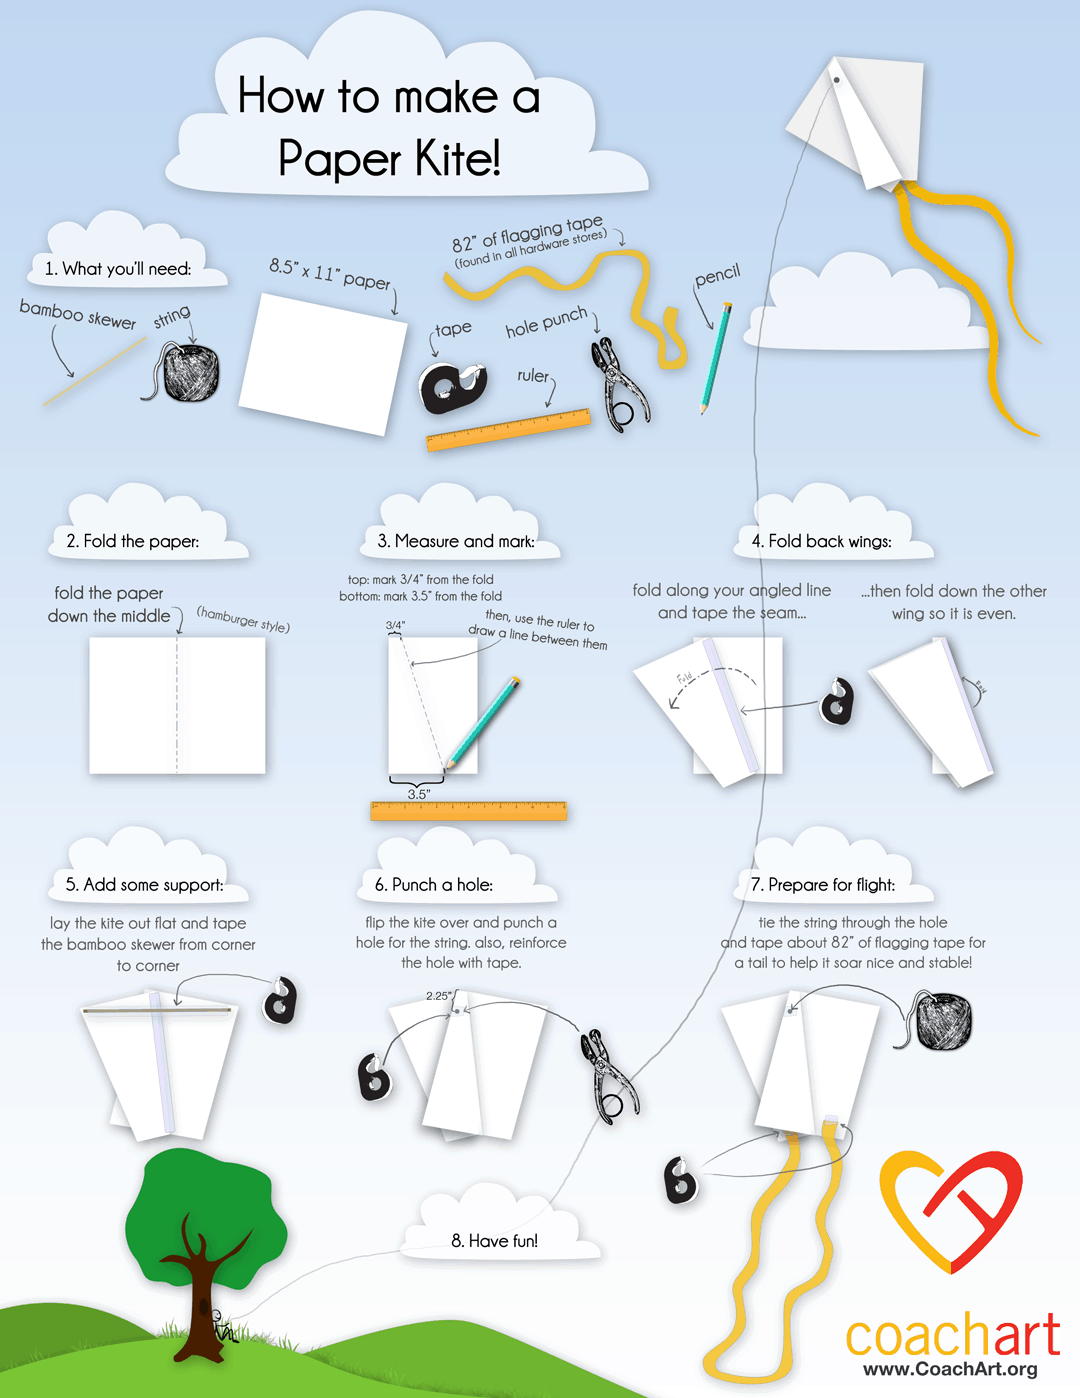 How To Make A Paper Kite Infographic